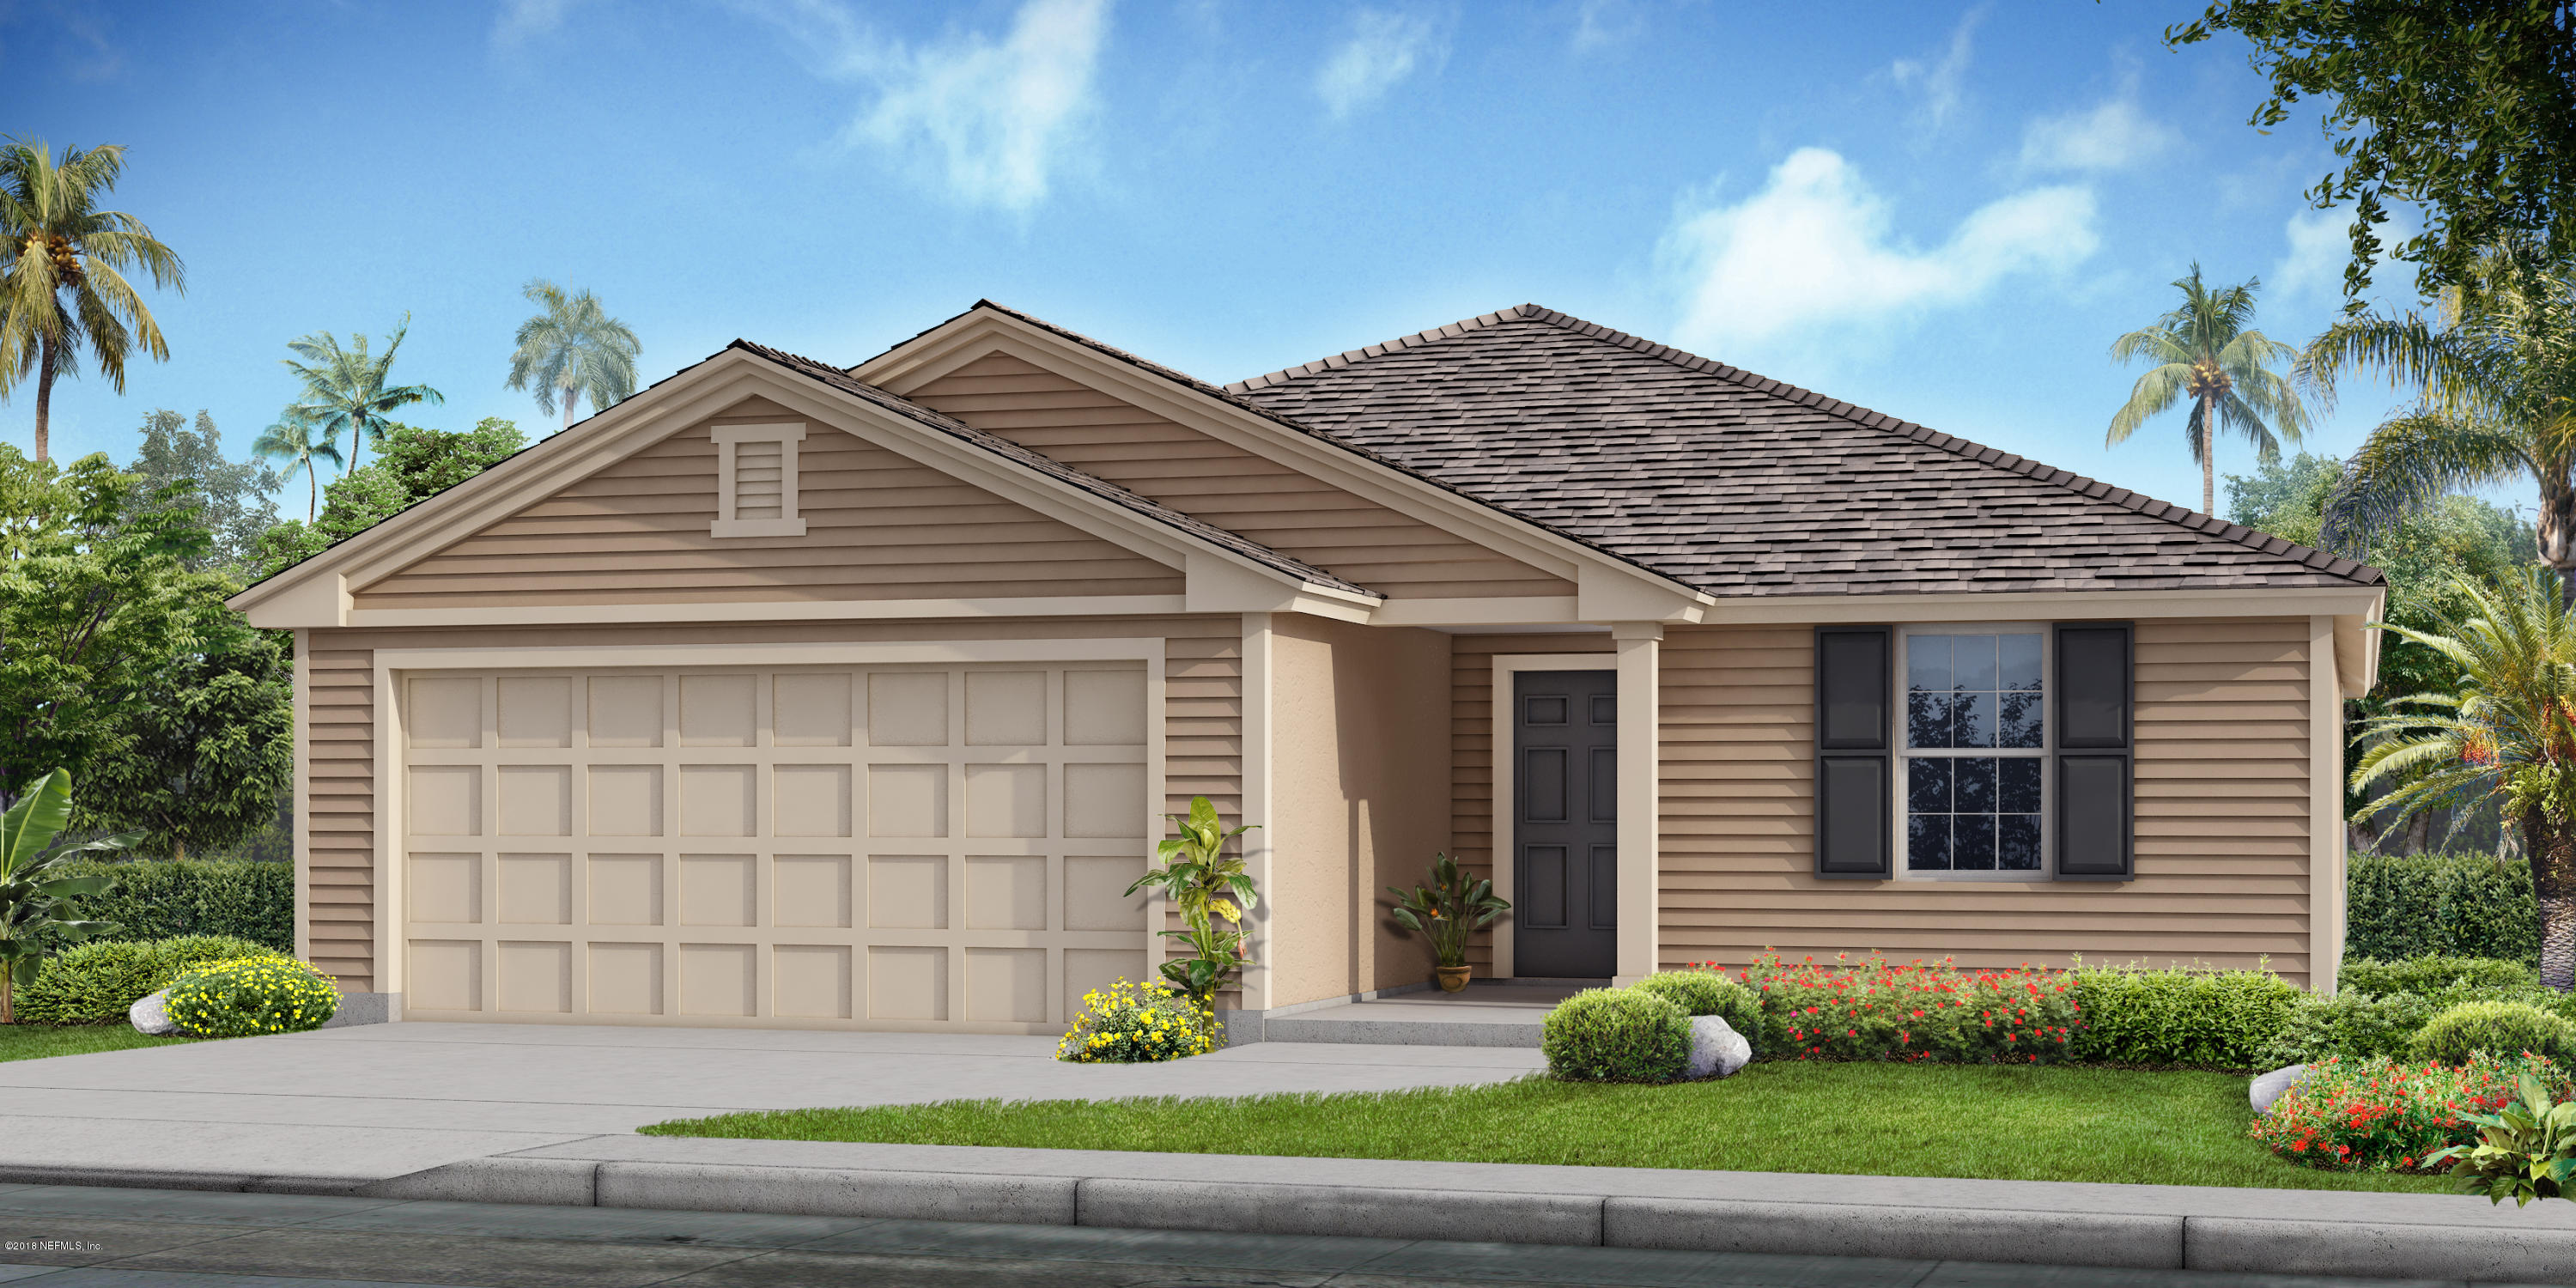 12209 GLIMMER, JACKSONVILLE, FLORIDA 32219, 3 Bedrooms Bedrooms, ,2 BathroomsBathrooms,Residential - single family,For sale,GLIMMER,945582